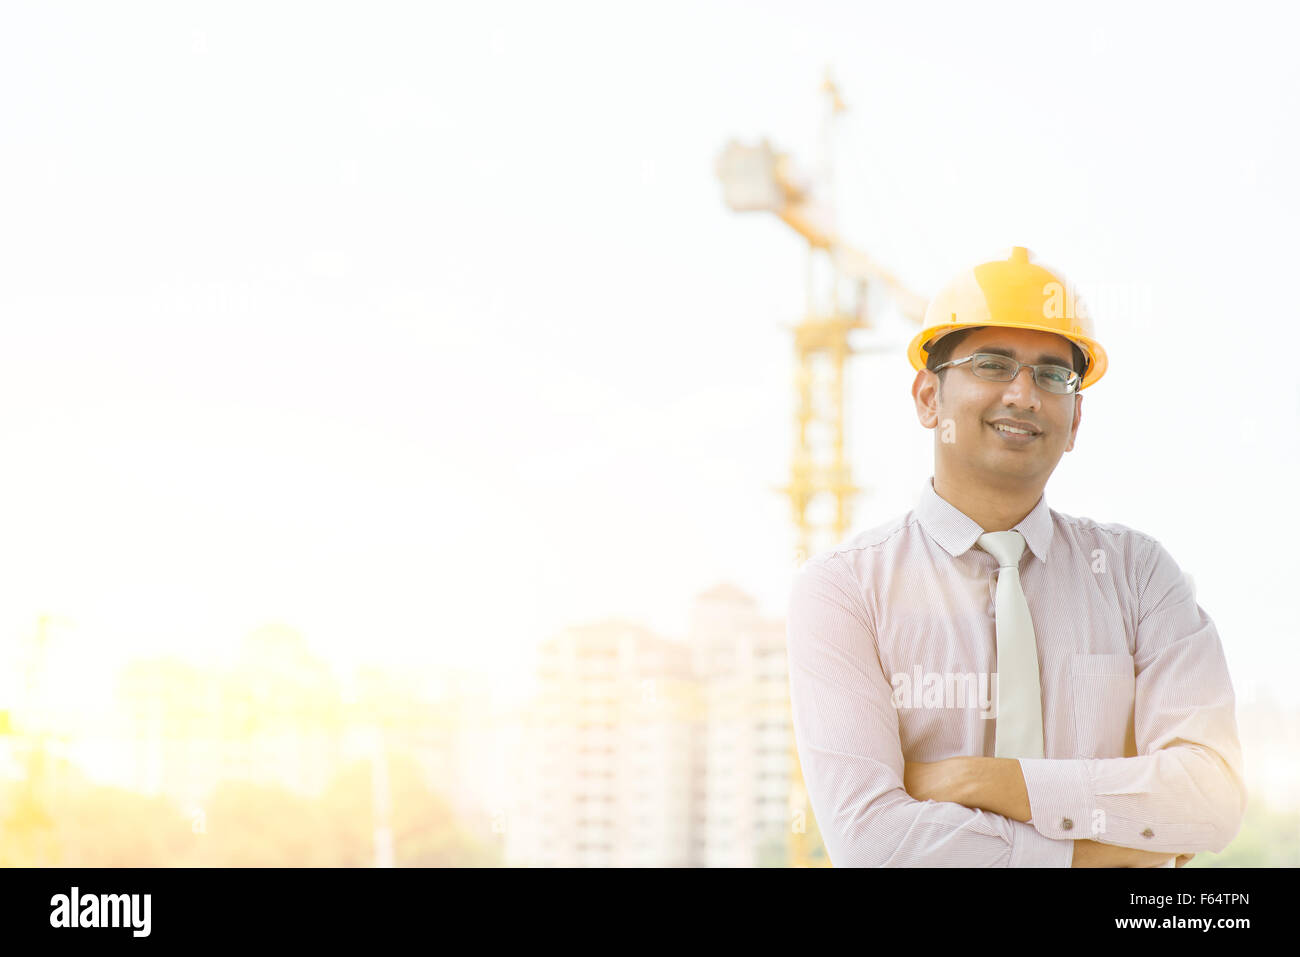 74dba5ab8bd Portrait of Asian Indian male site contractor engineer with hard hat  looking at camera and smiling at construction site